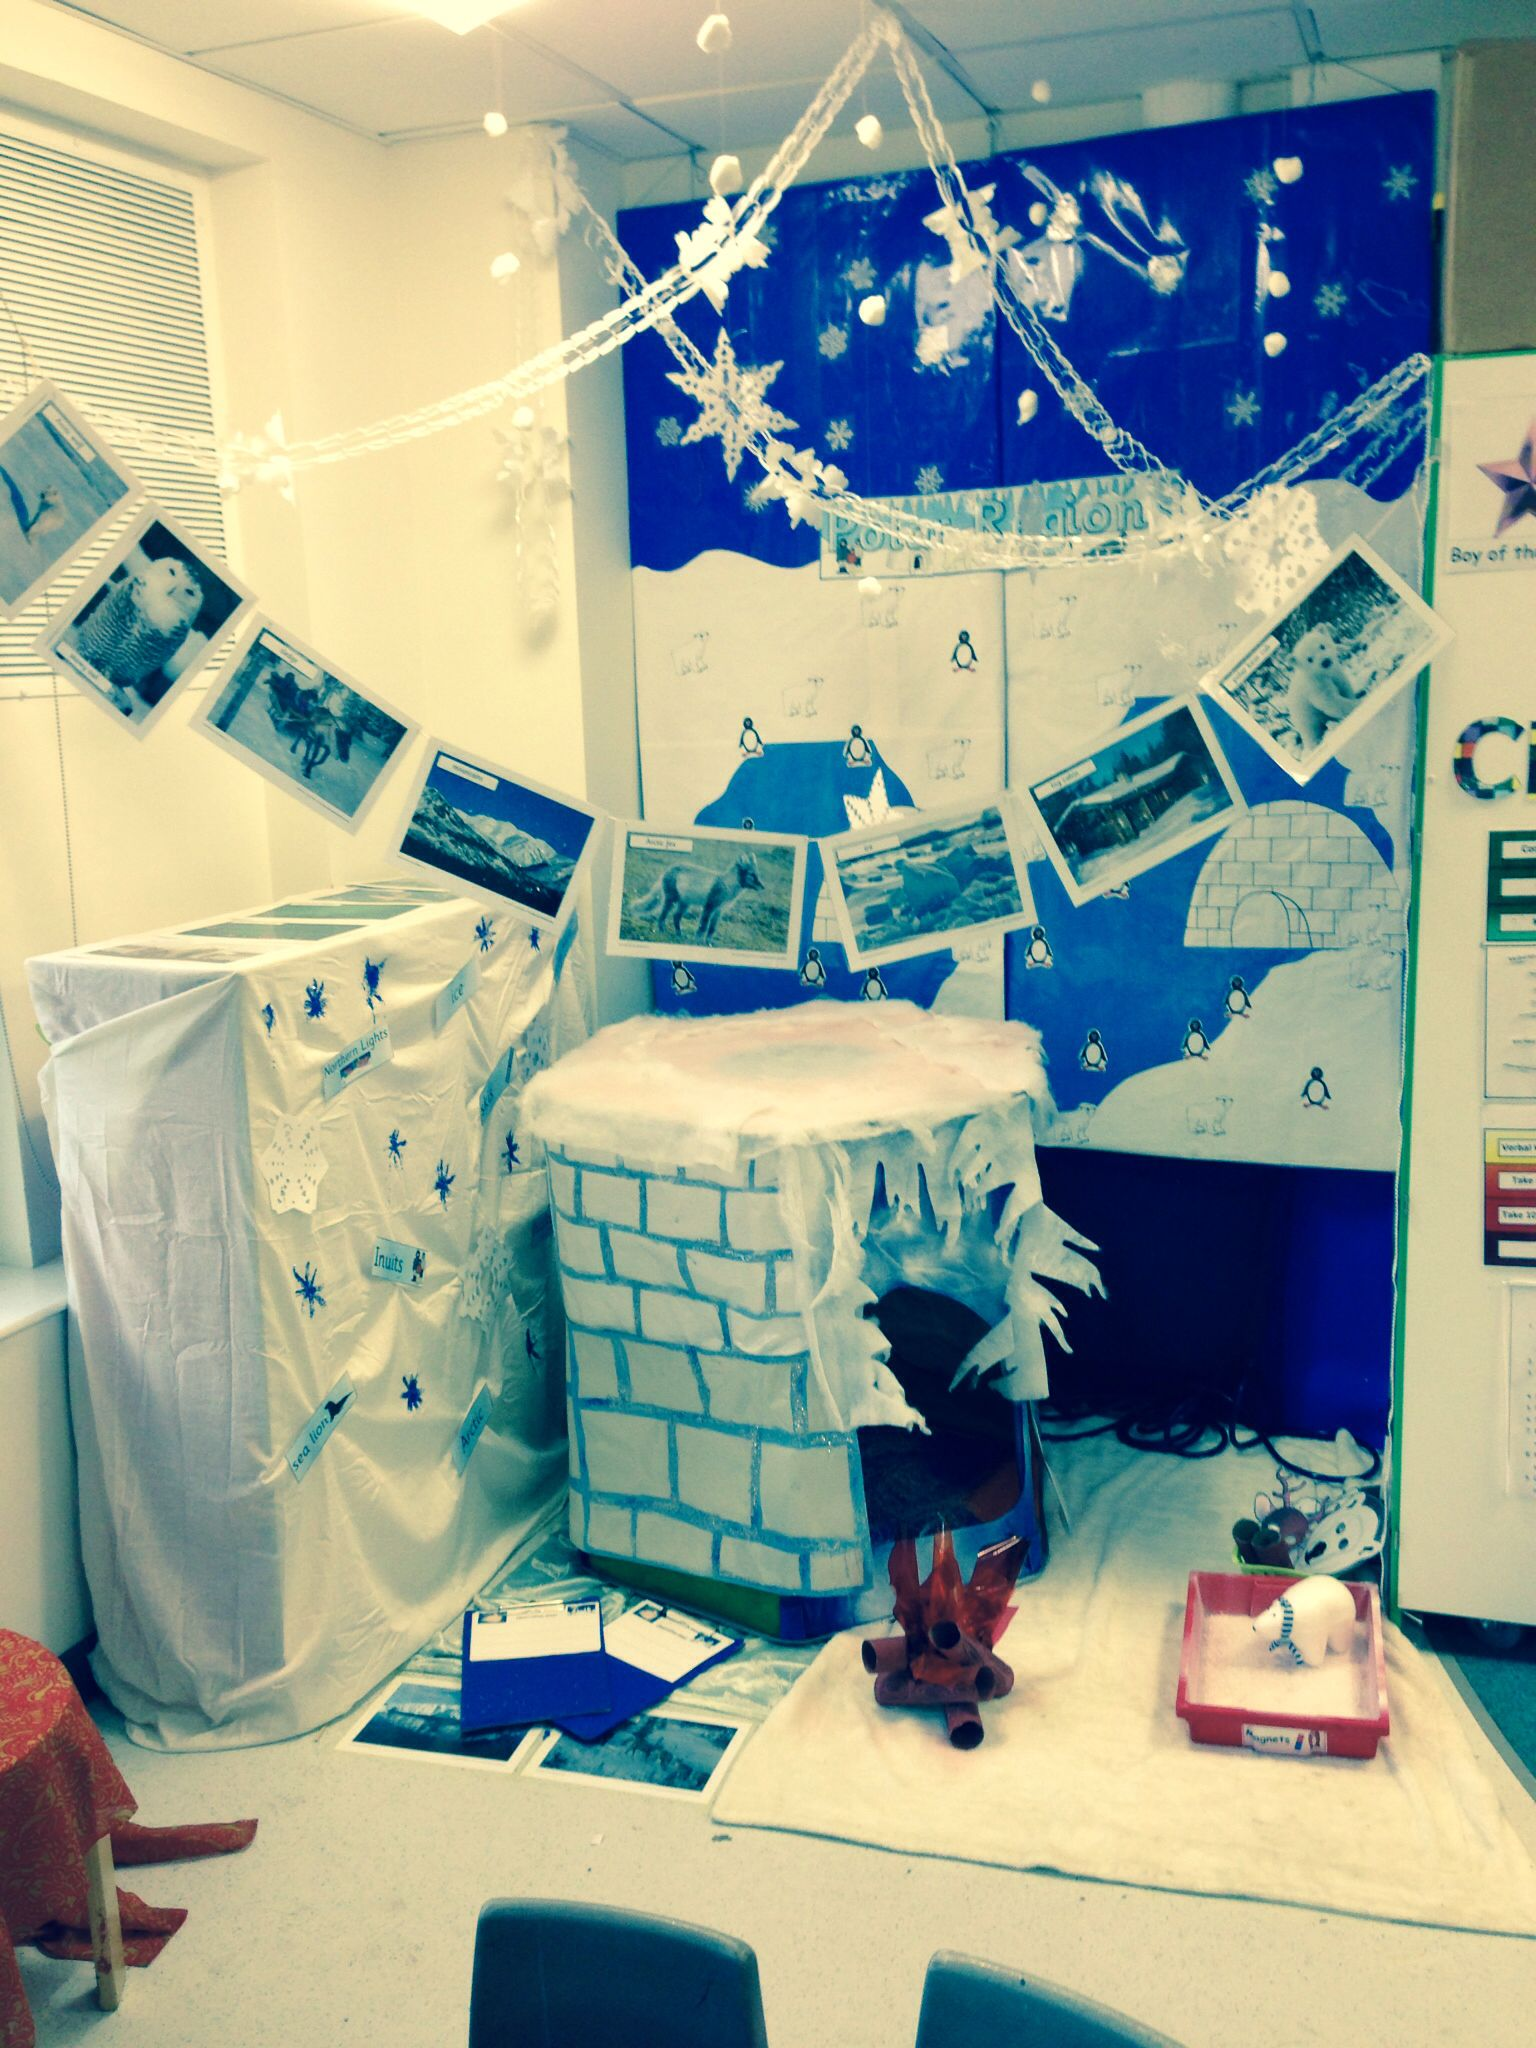 Role playing ideas for the bedroom eyfs winter role play for Role playing ideas for couples in the bedroom